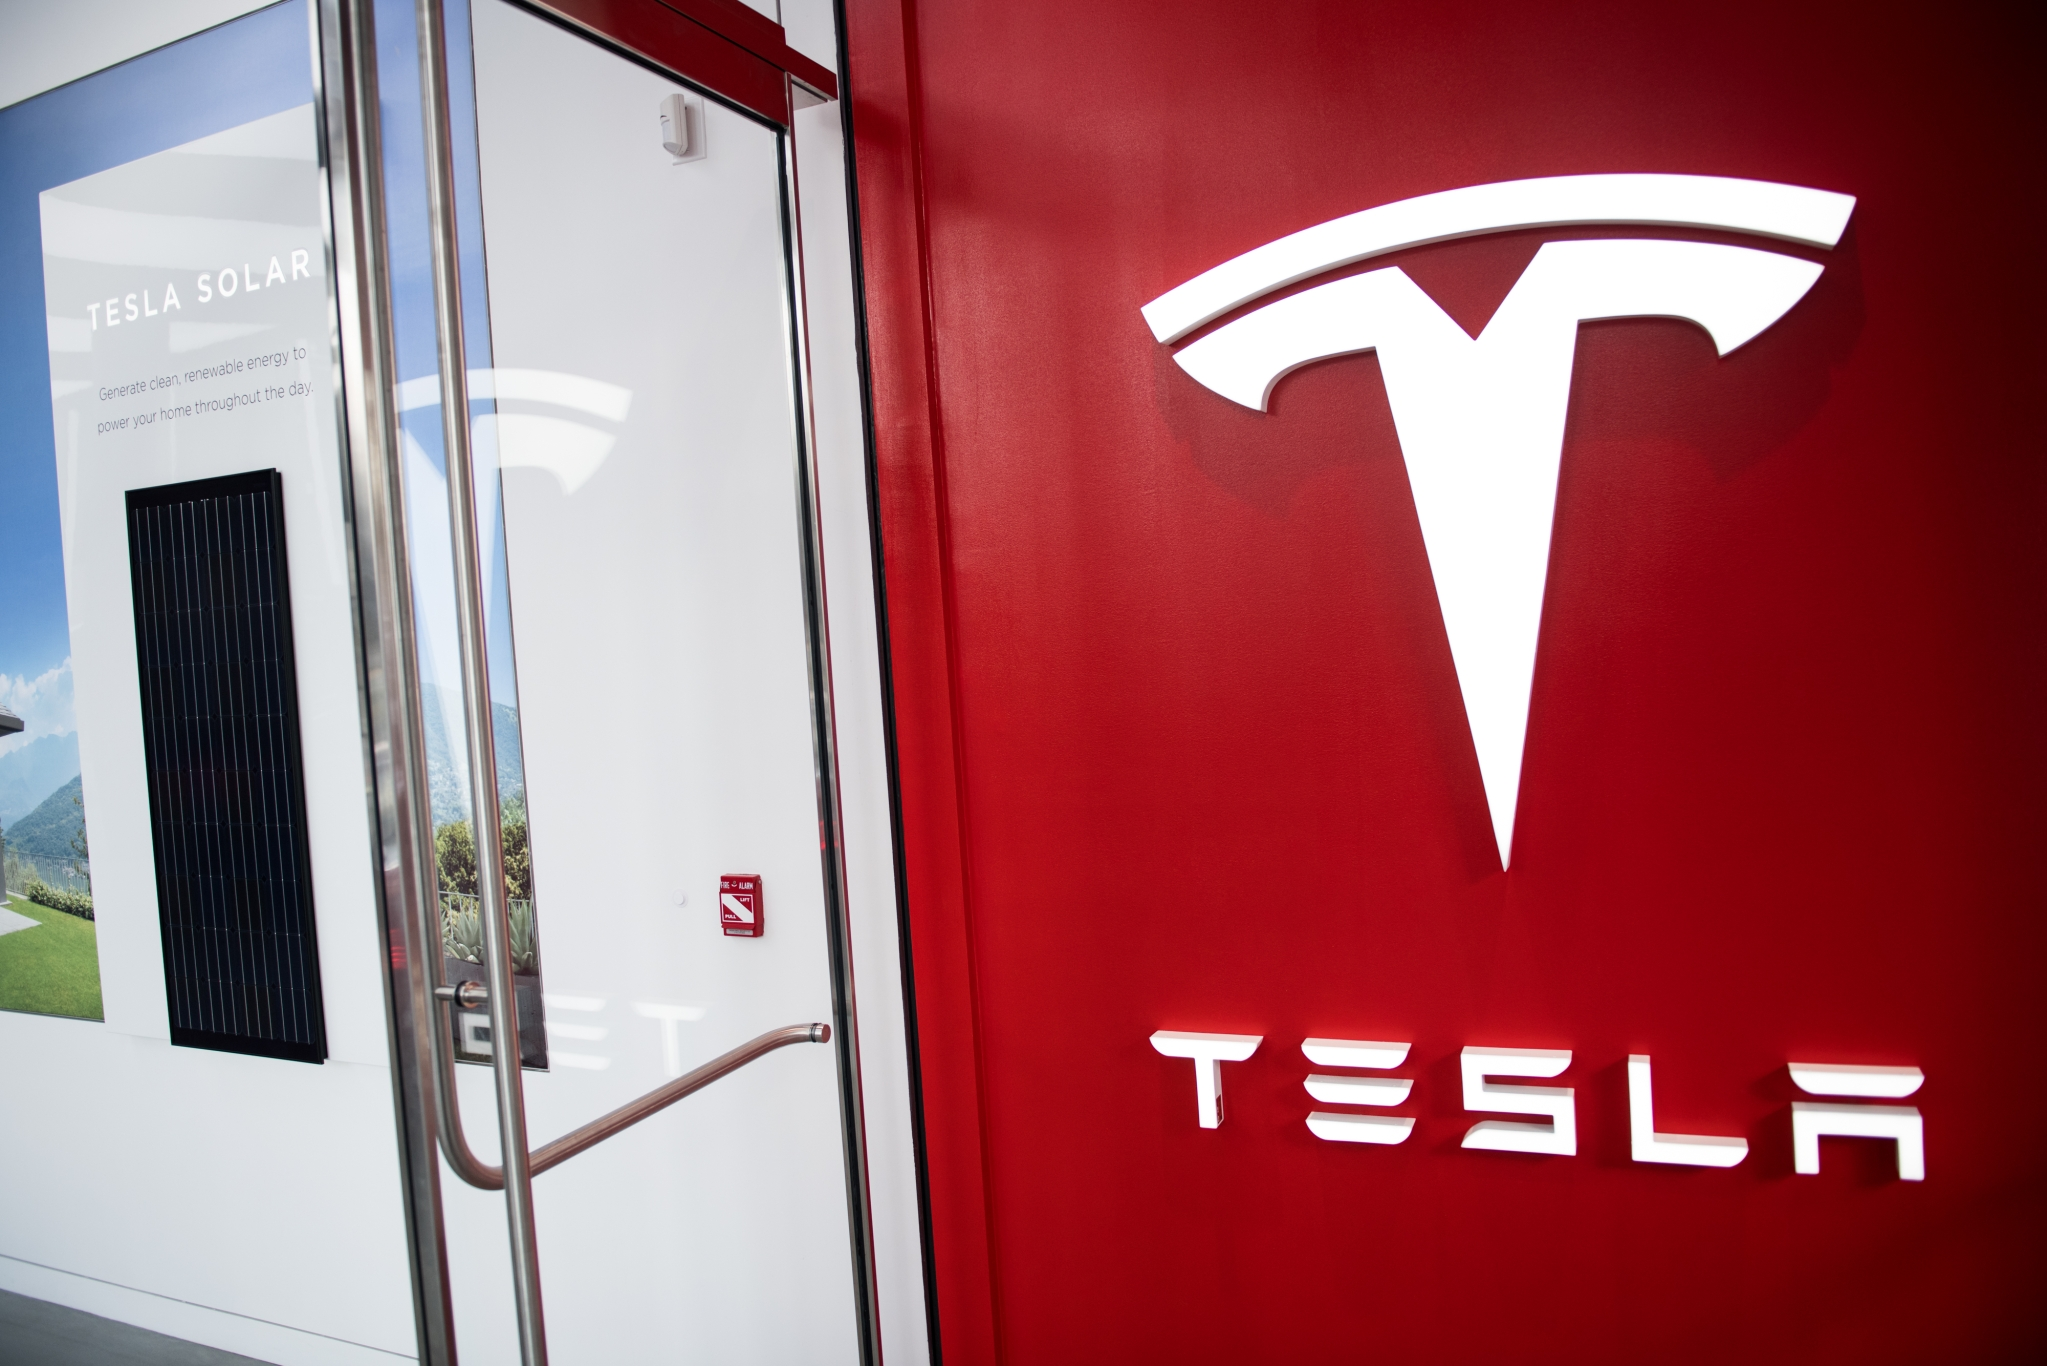 Tesla S Nyc Store Sells Solar Cars And Home Batteries